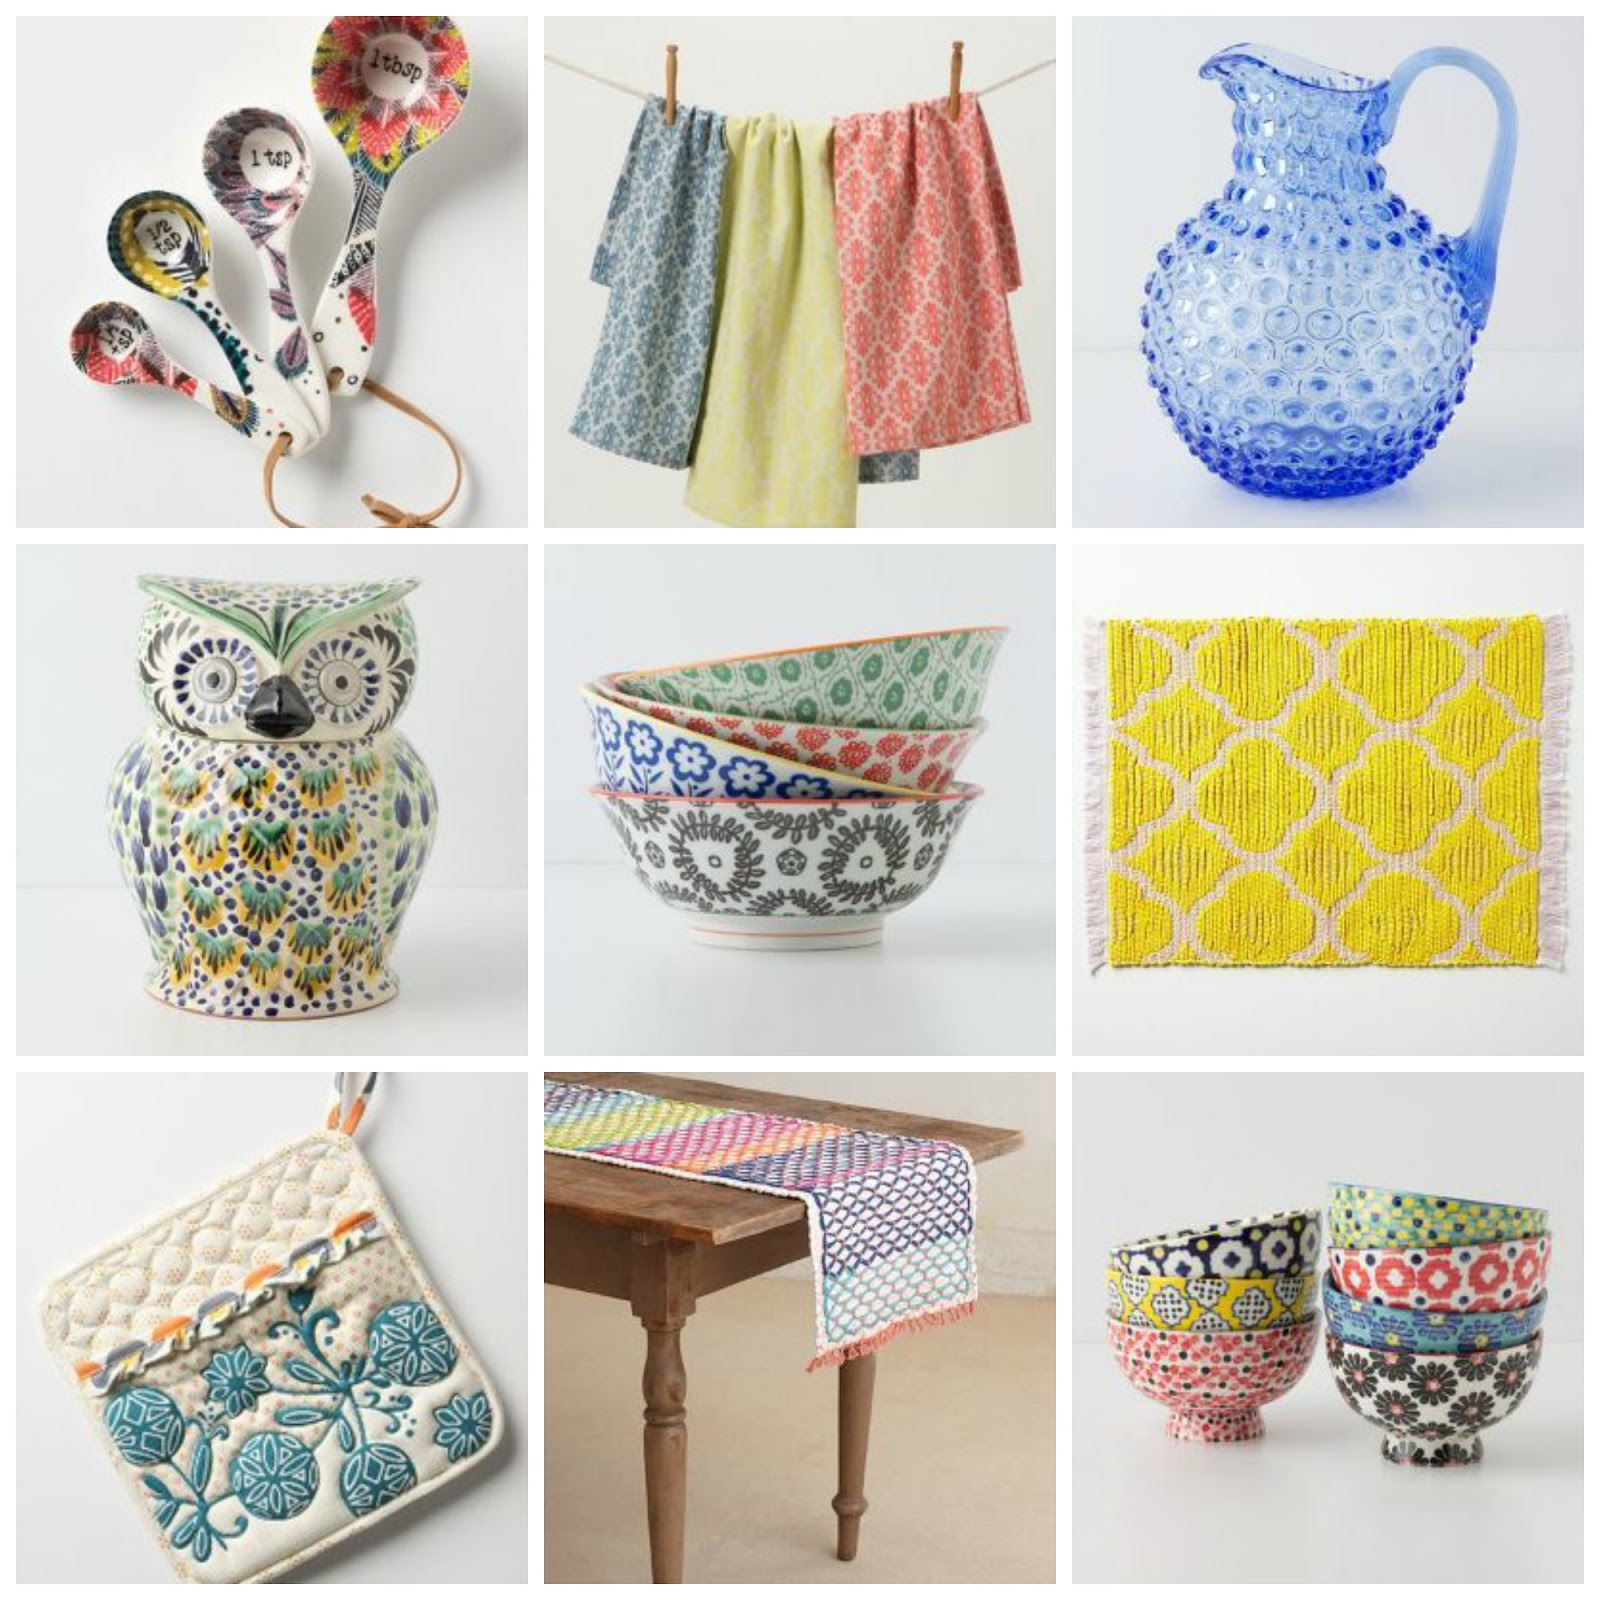 I Was Especially Smitten With Their Kitchen Products. If You Are Looking To  Add Color To Your Kitchen Or Want A Few Fun Accessories Check Out  Anthropologie.